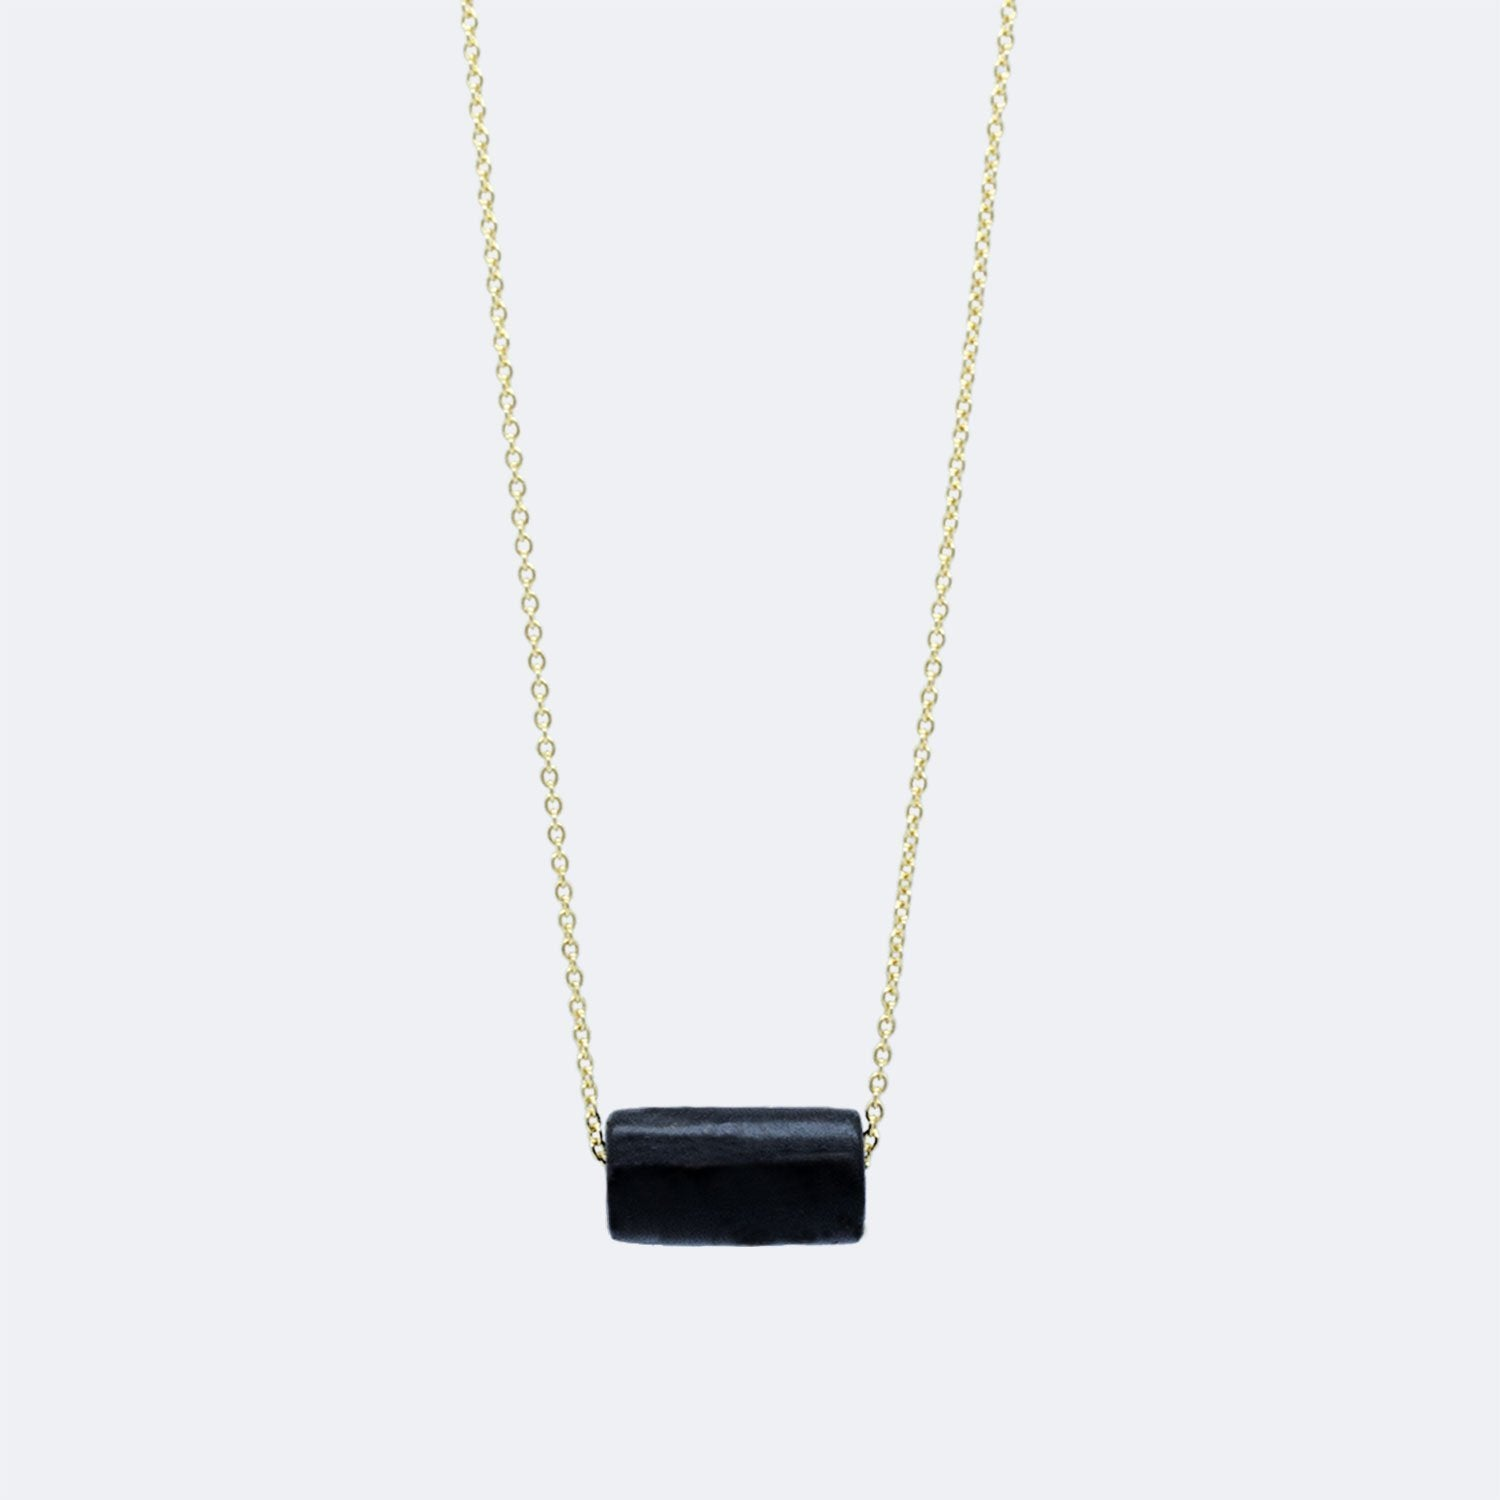 Gold Necklace - Black Bead - Necklaces - 5mm Paper - Naiise